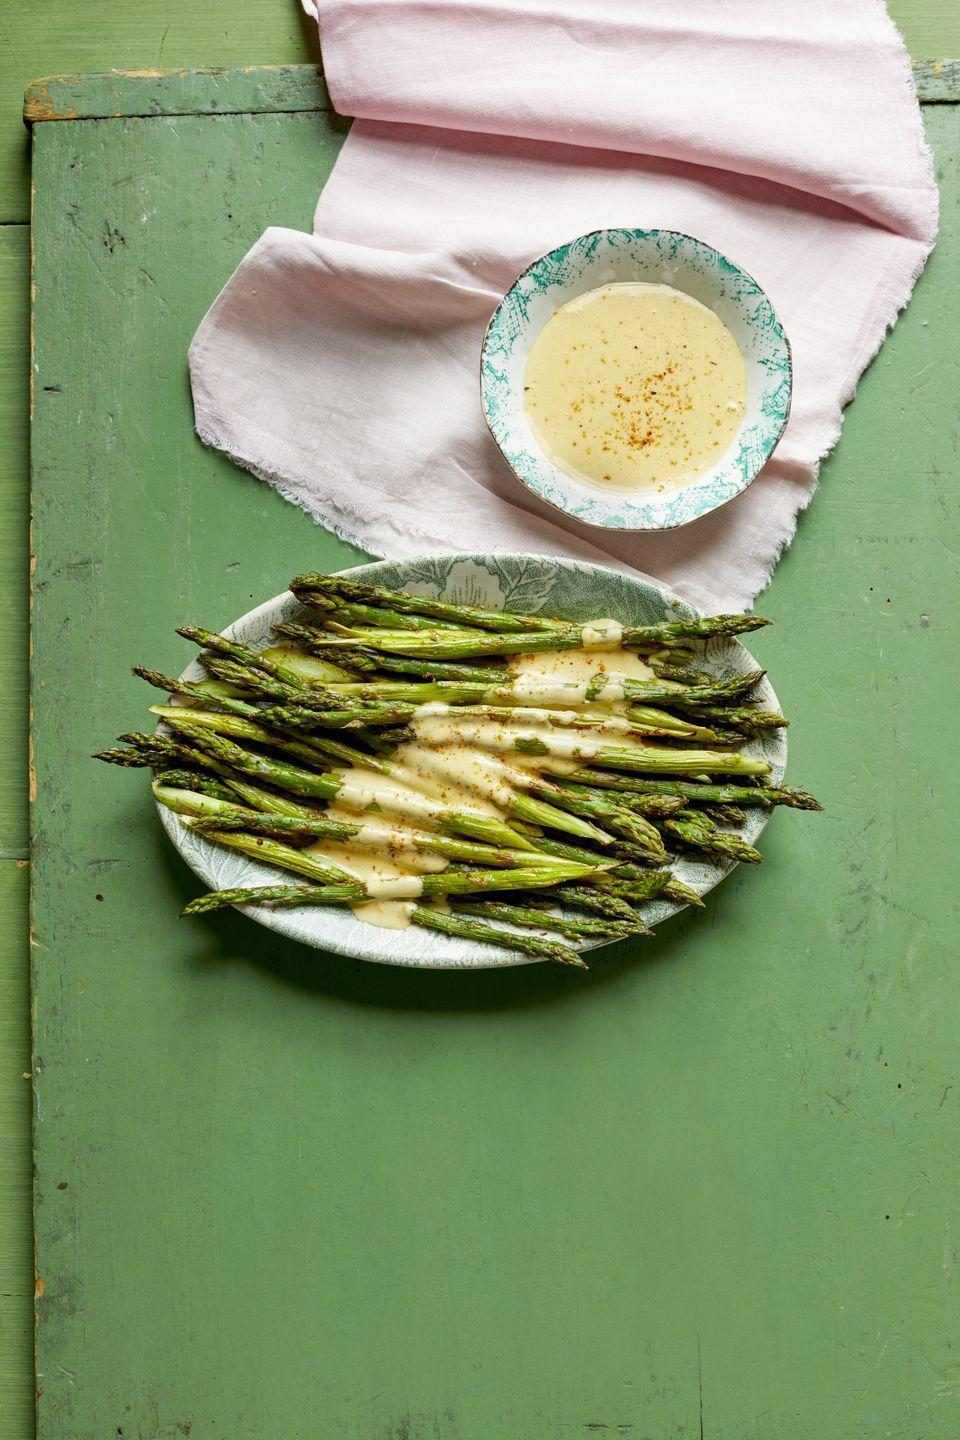 """<p>Did you know hollandaise is good on more than just eggs Benedict? It's amazing on roasted veggies like asparagus—especially when it has a hint of Cajun seasoning in it.</p><p><strong><a href=""""https://www.thepioneerwoman.com/food-cooking/recipes/a35584543/roasted-asparagus-with-cajun-hollandaise-recipe/"""" rel=""""nofollow noopener"""" target=""""_blank"""" data-ylk=""""slk:Get the recipe."""" class=""""link rapid-noclick-resp"""">Get the recipe.</a></strong></p><p><a class=""""link rapid-noclick-resp"""" href=""""https://go.redirectingat.com?id=74968X1596630&url=https%3A%2F%2Fwww.walmart.com%2Fsearch%2F%3Fquery%3Dpioneer%2Bwoman%2Bserving%2Bplates&sref=https%3A%2F%2Fwww.thepioneerwoman.com%2Ffood-cooking%2Fmeals-menus%2Fg35514088%2Fbest-side-dishes-for-ham%2F"""" rel=""""nofollow noopener"""" target=""""_blank"""" data-ylk=""""slk:SHOP SERVING PLATES"""">SHOP SERVING PLATES</a></p>"""